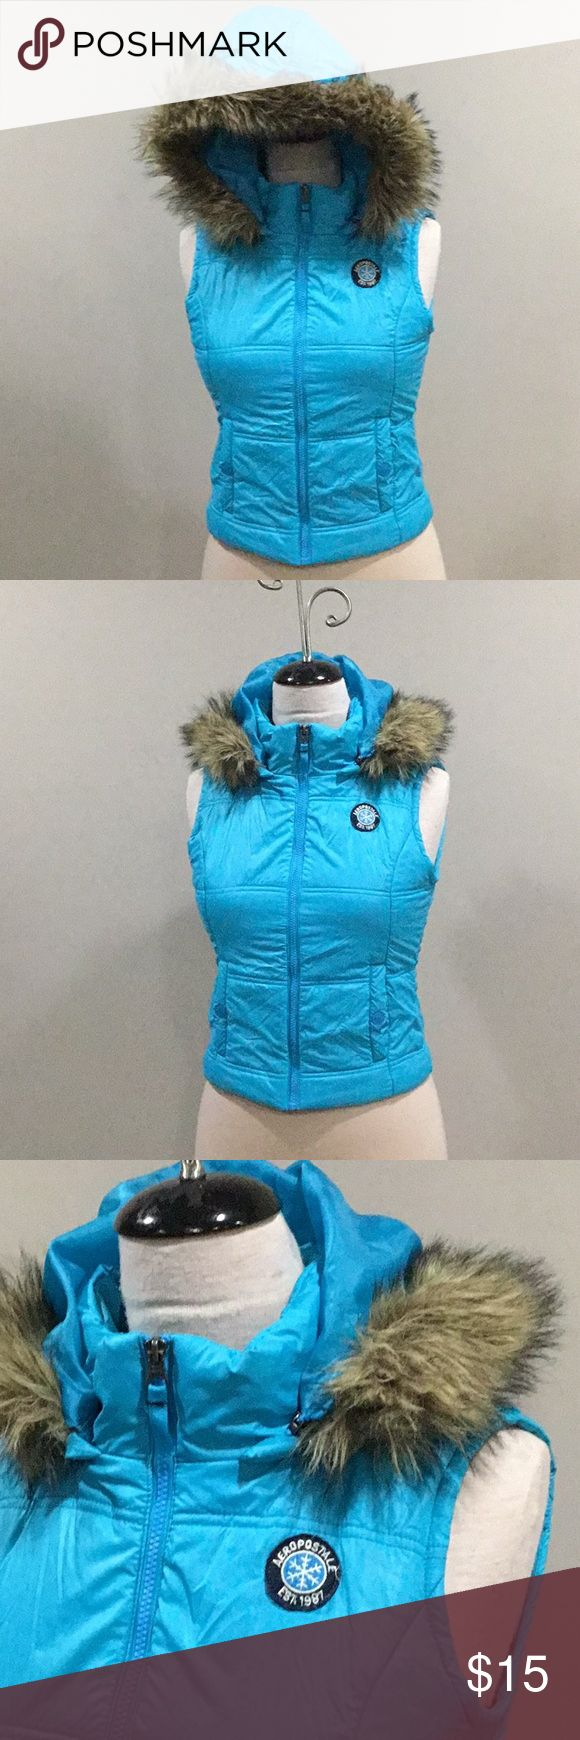 AEROPOSTALE PUFFER VEST BLUE SIZE M GREAT CONDITION PUFFER VEST. HOOD ZIPS OFF SO FAUX FUR DOES NOT GET DESTROYED IN WASHER. NO VEST Aeropostale Jackets & Coats Vests